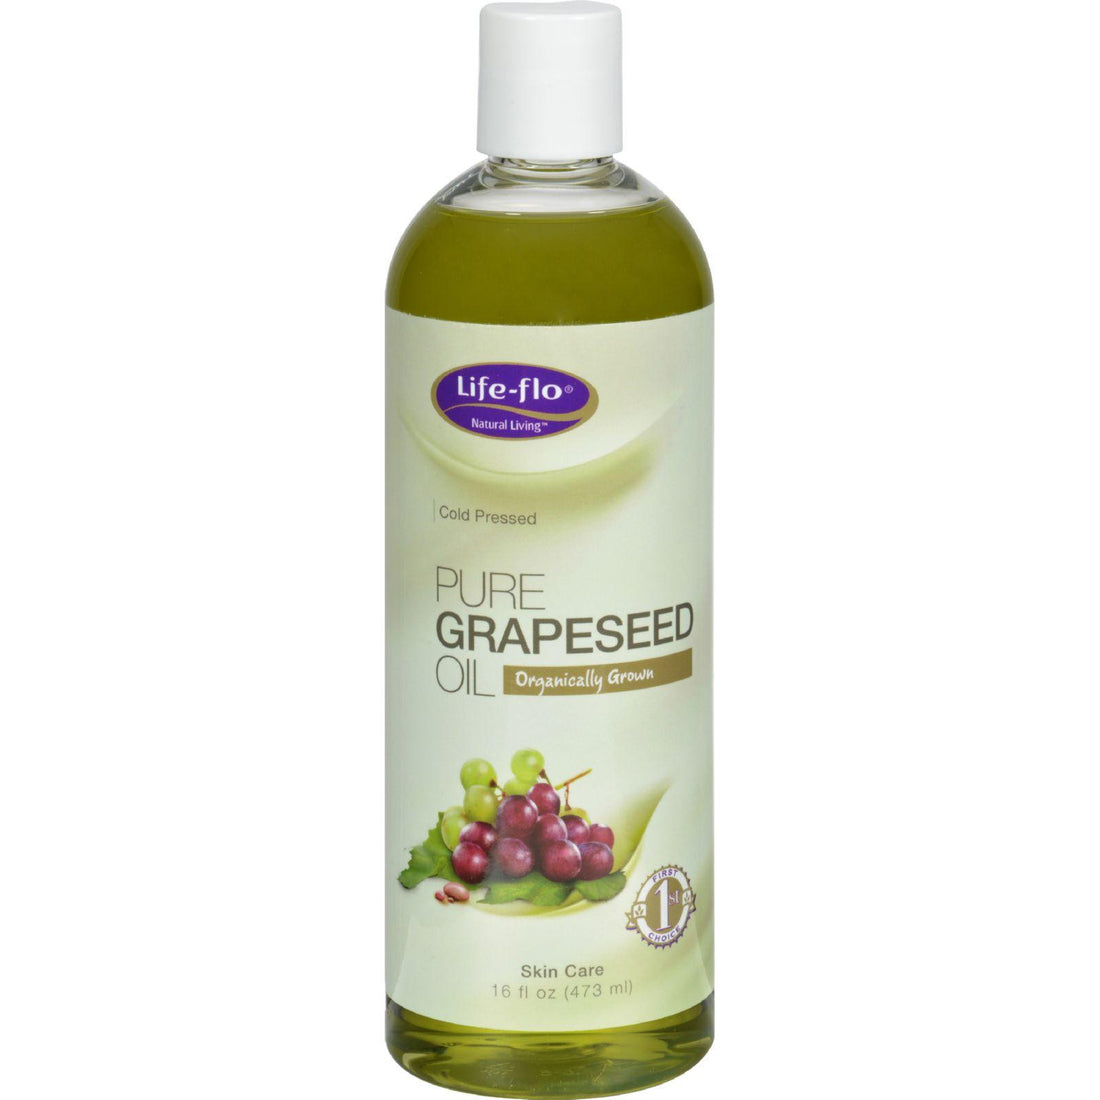 Mother Mantis: Life-flo Pure Grapeseed Oil Organic - 16 Fl Oz Life-flo